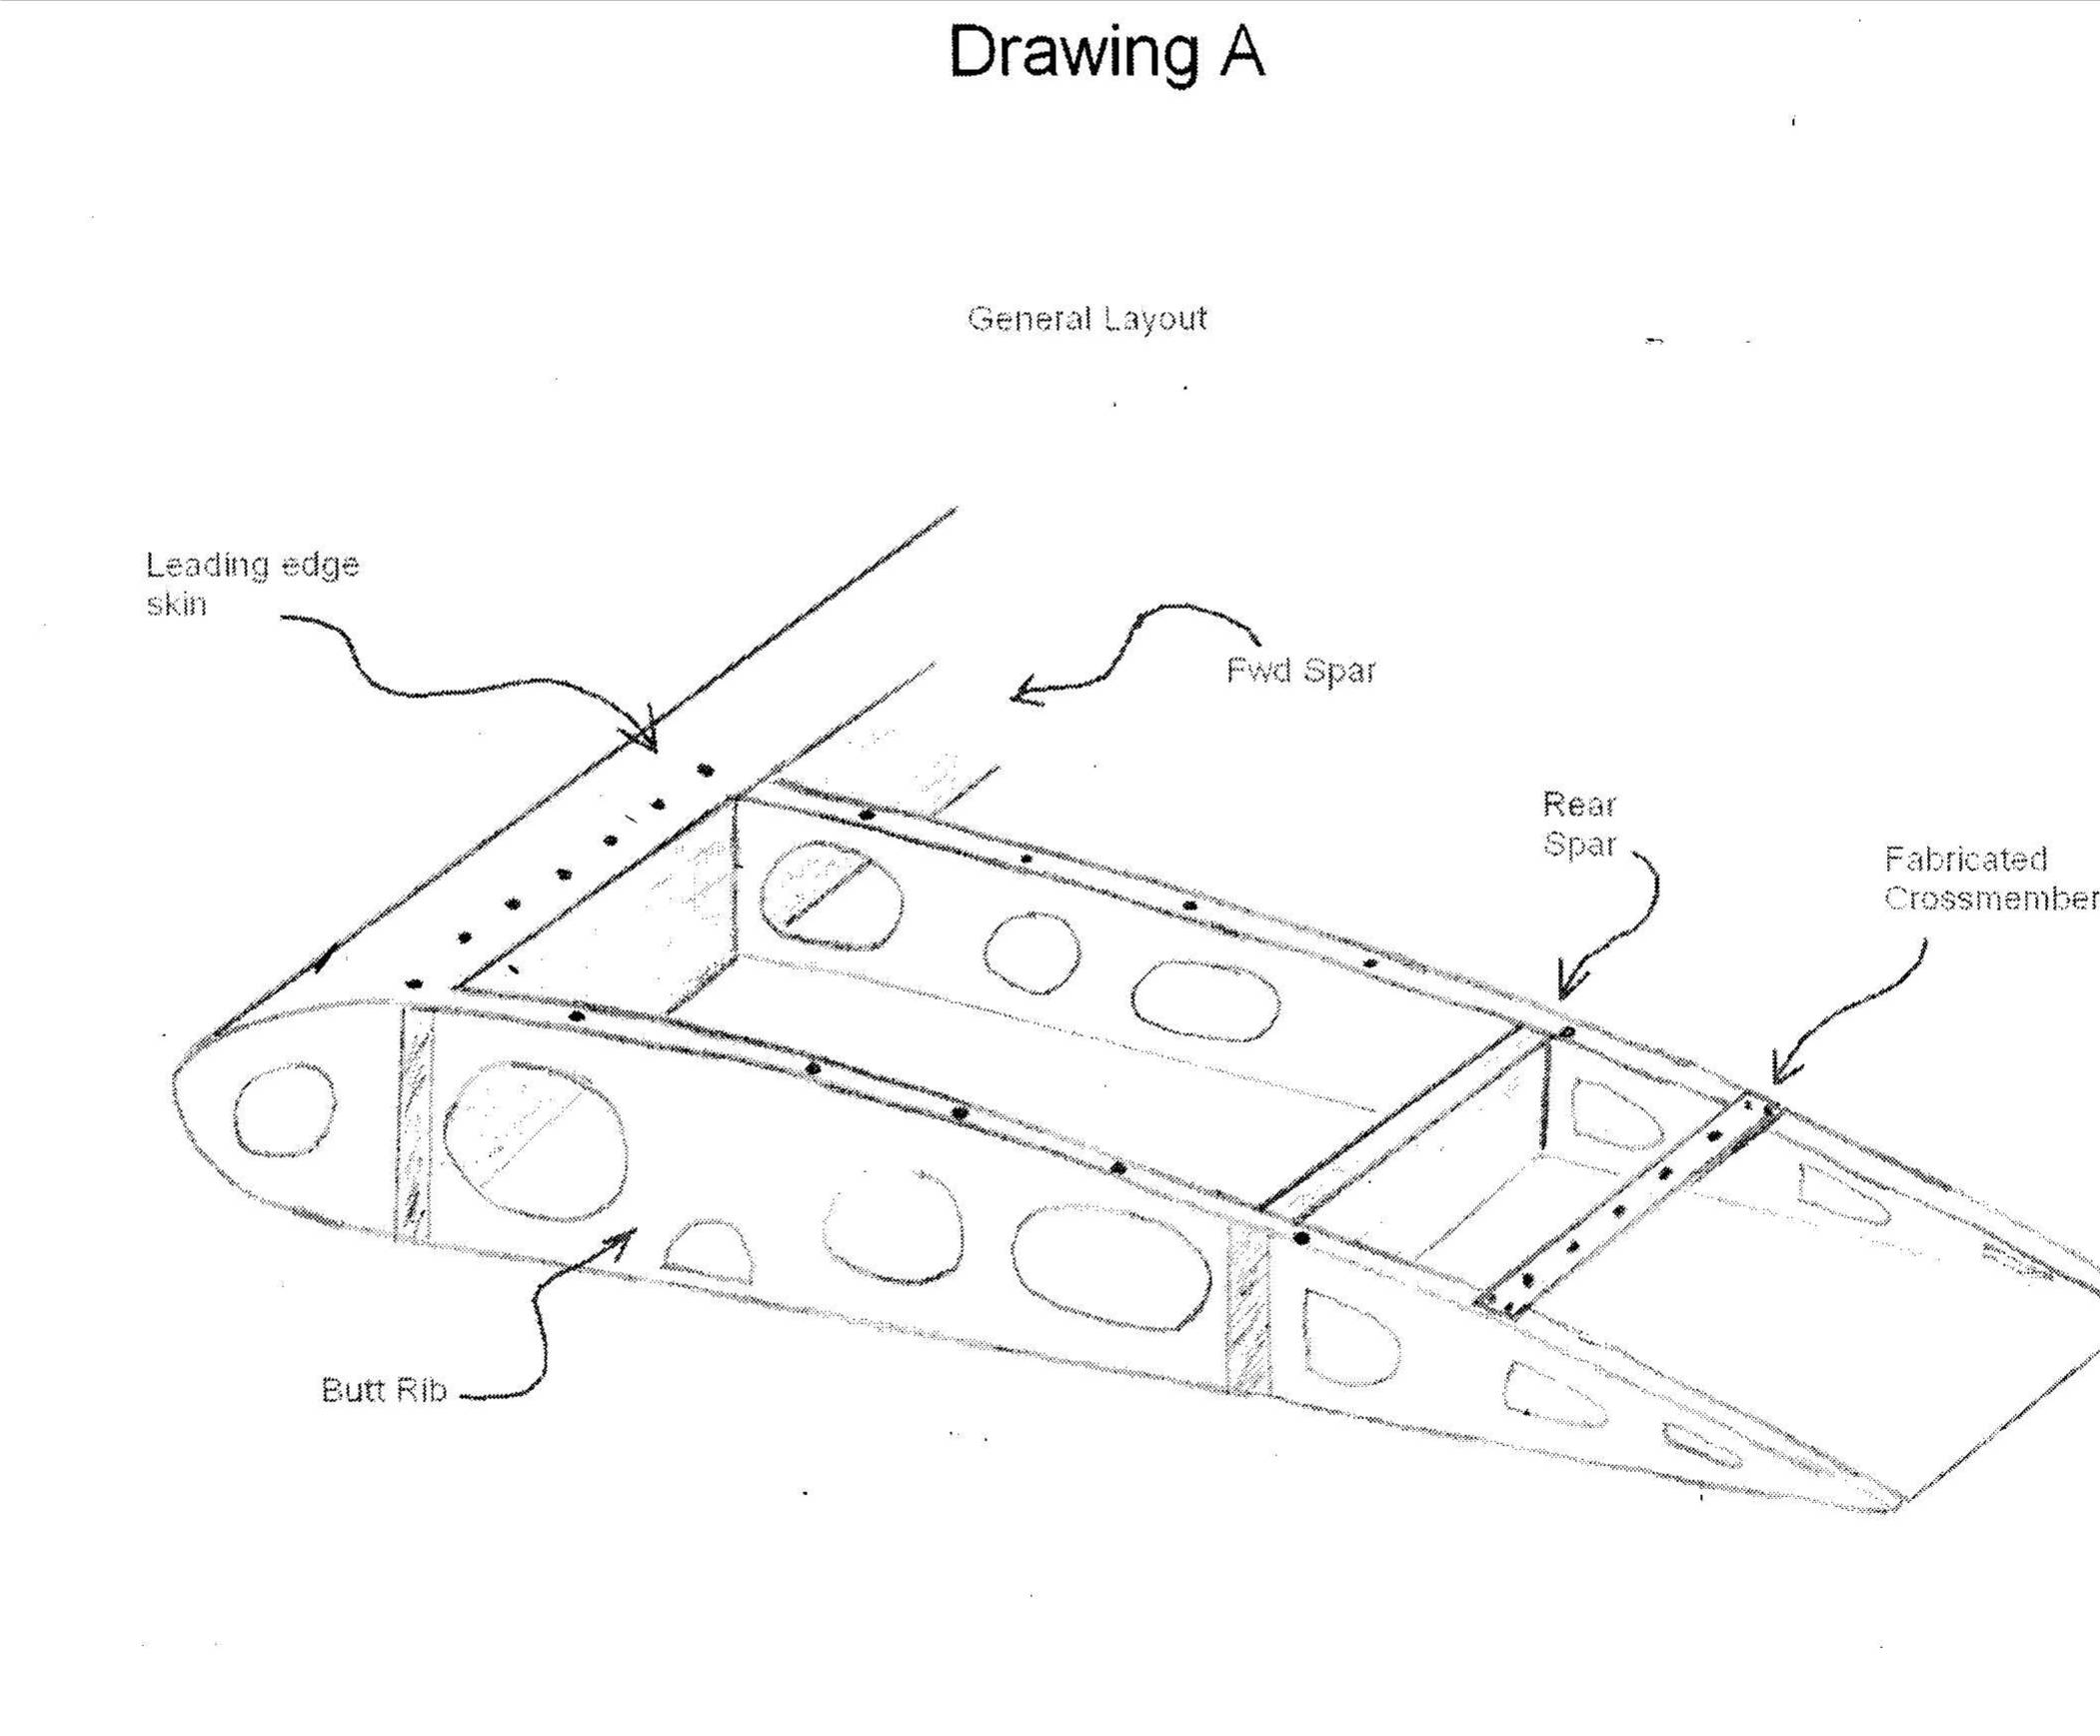 cessna 172 drawing at getdrawings com